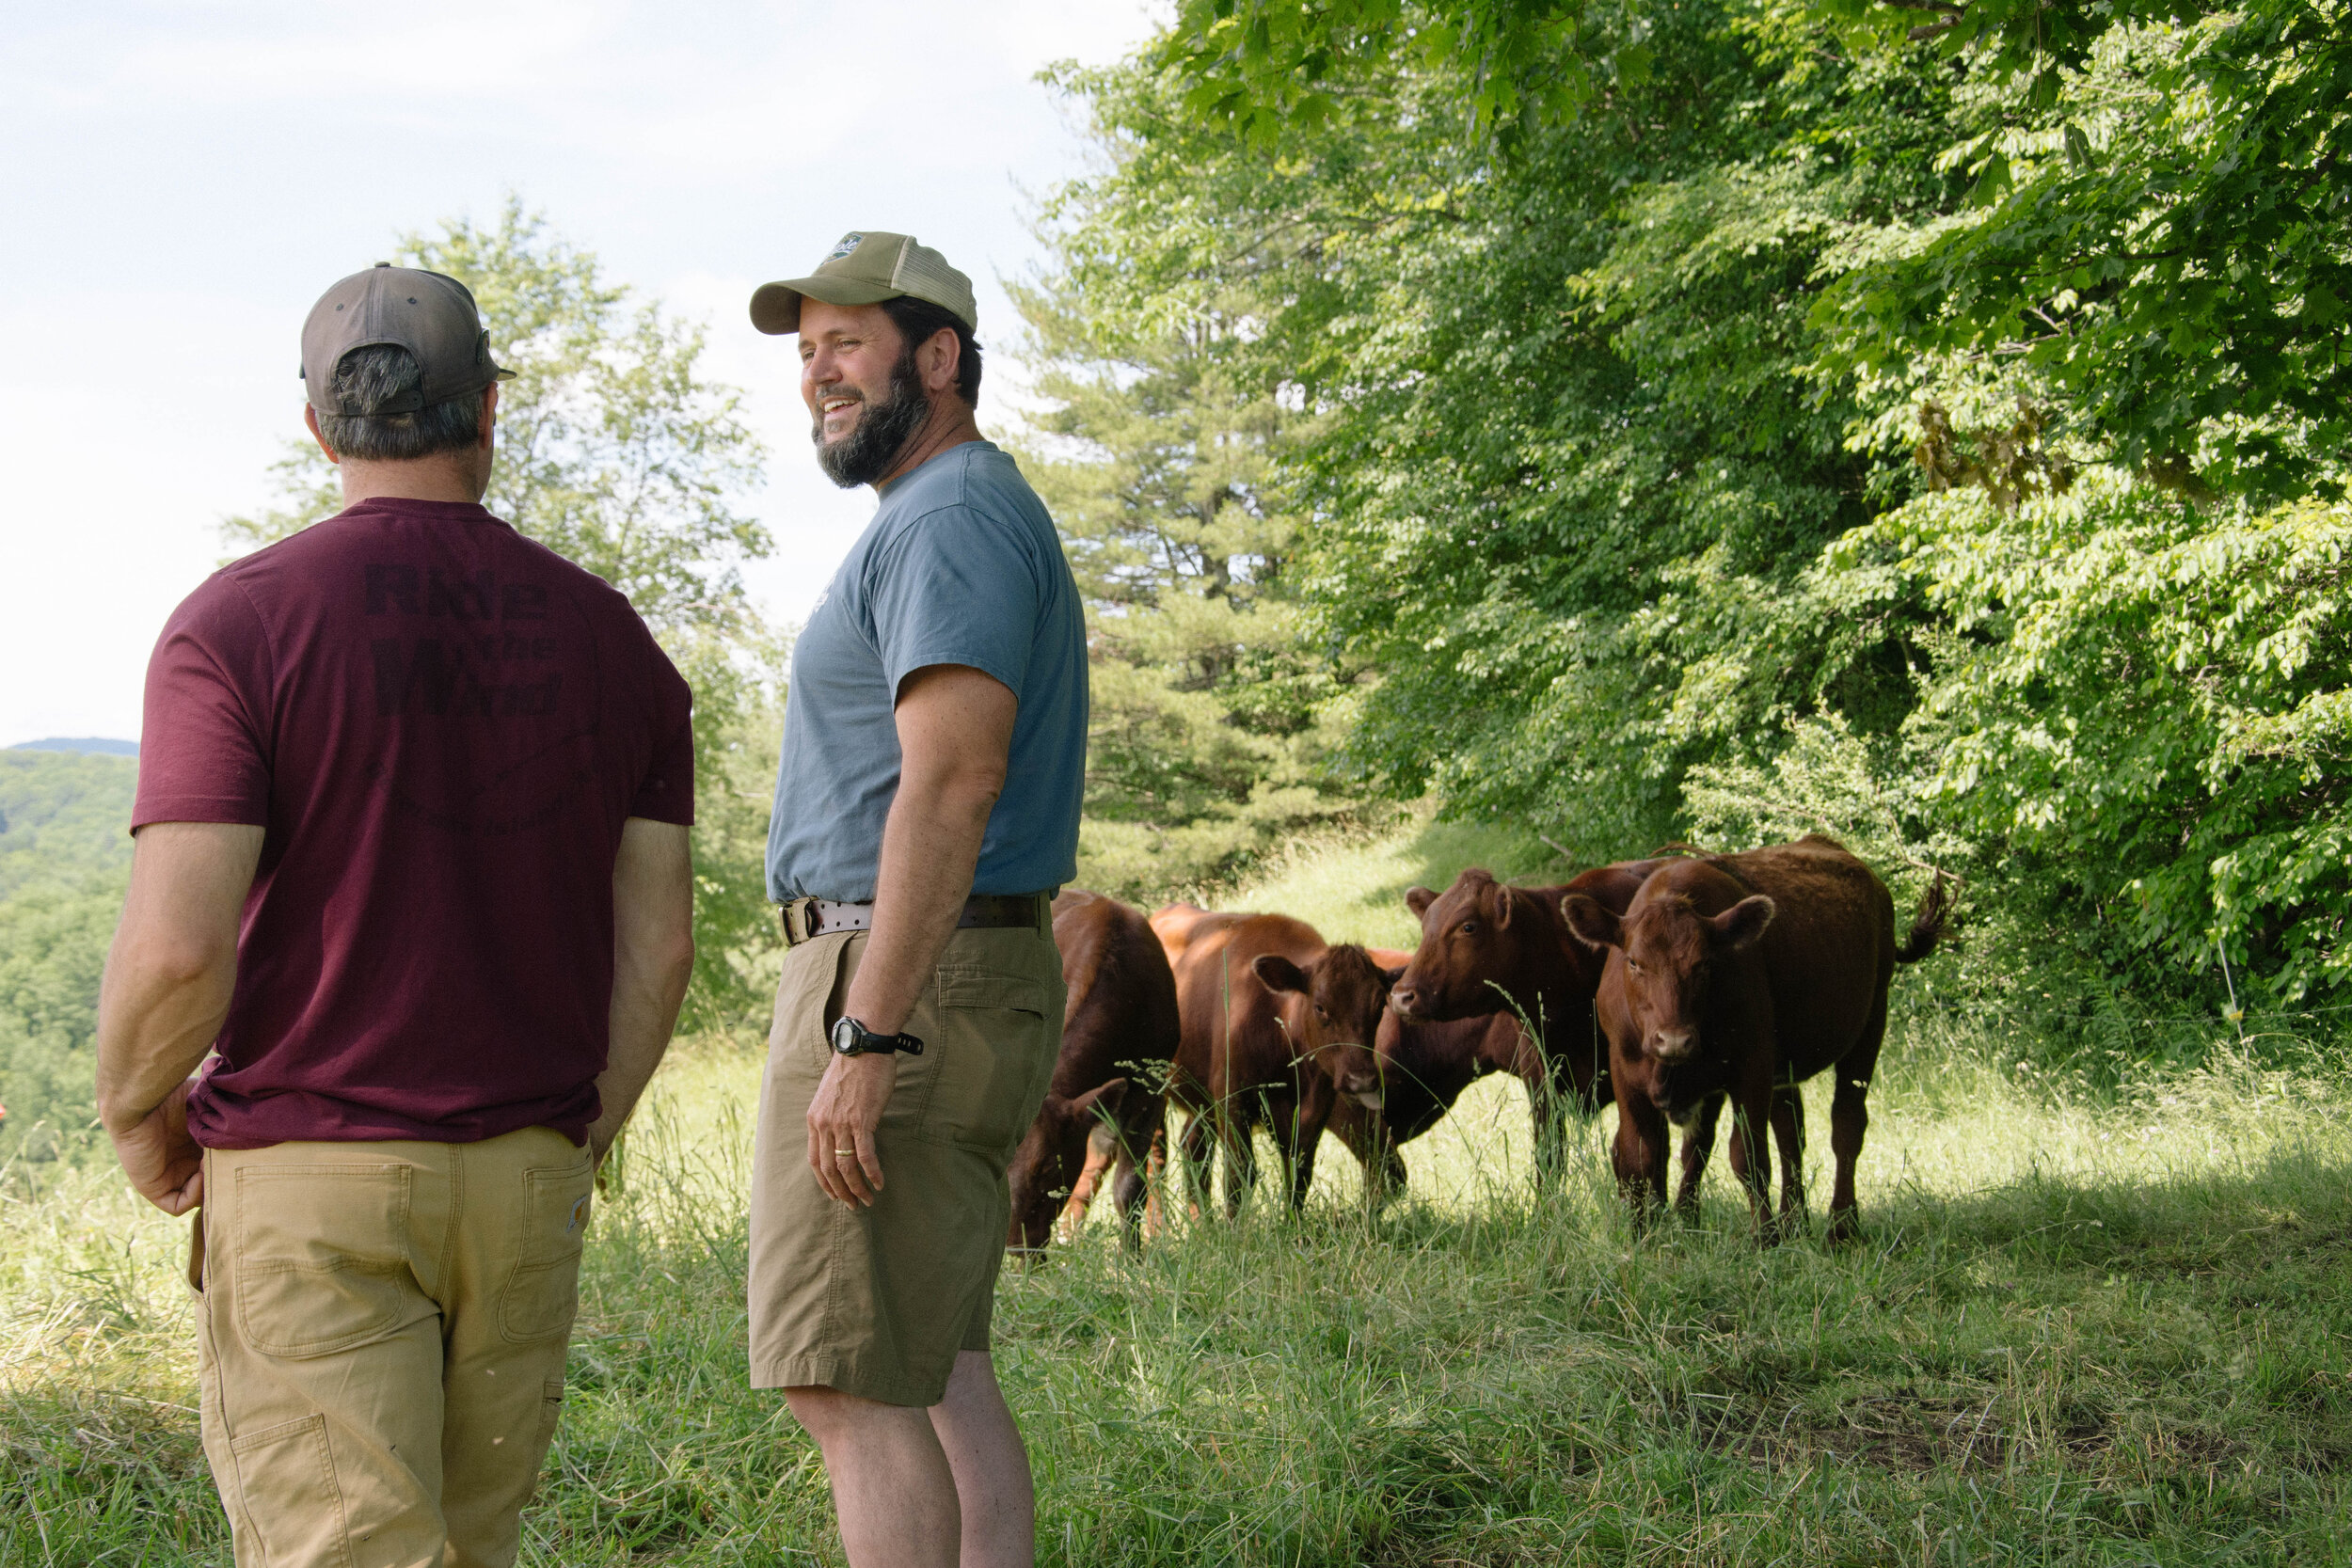 KEVIN CHANNELL, FARM BUSINESS SPECIALIST FROM THE INTERVALE CENTER, SPEAKS WITH BEN HALLEY OF SECOND WIND FARM. IMAGE COURTESY OF THE INTERVALE CENTER.